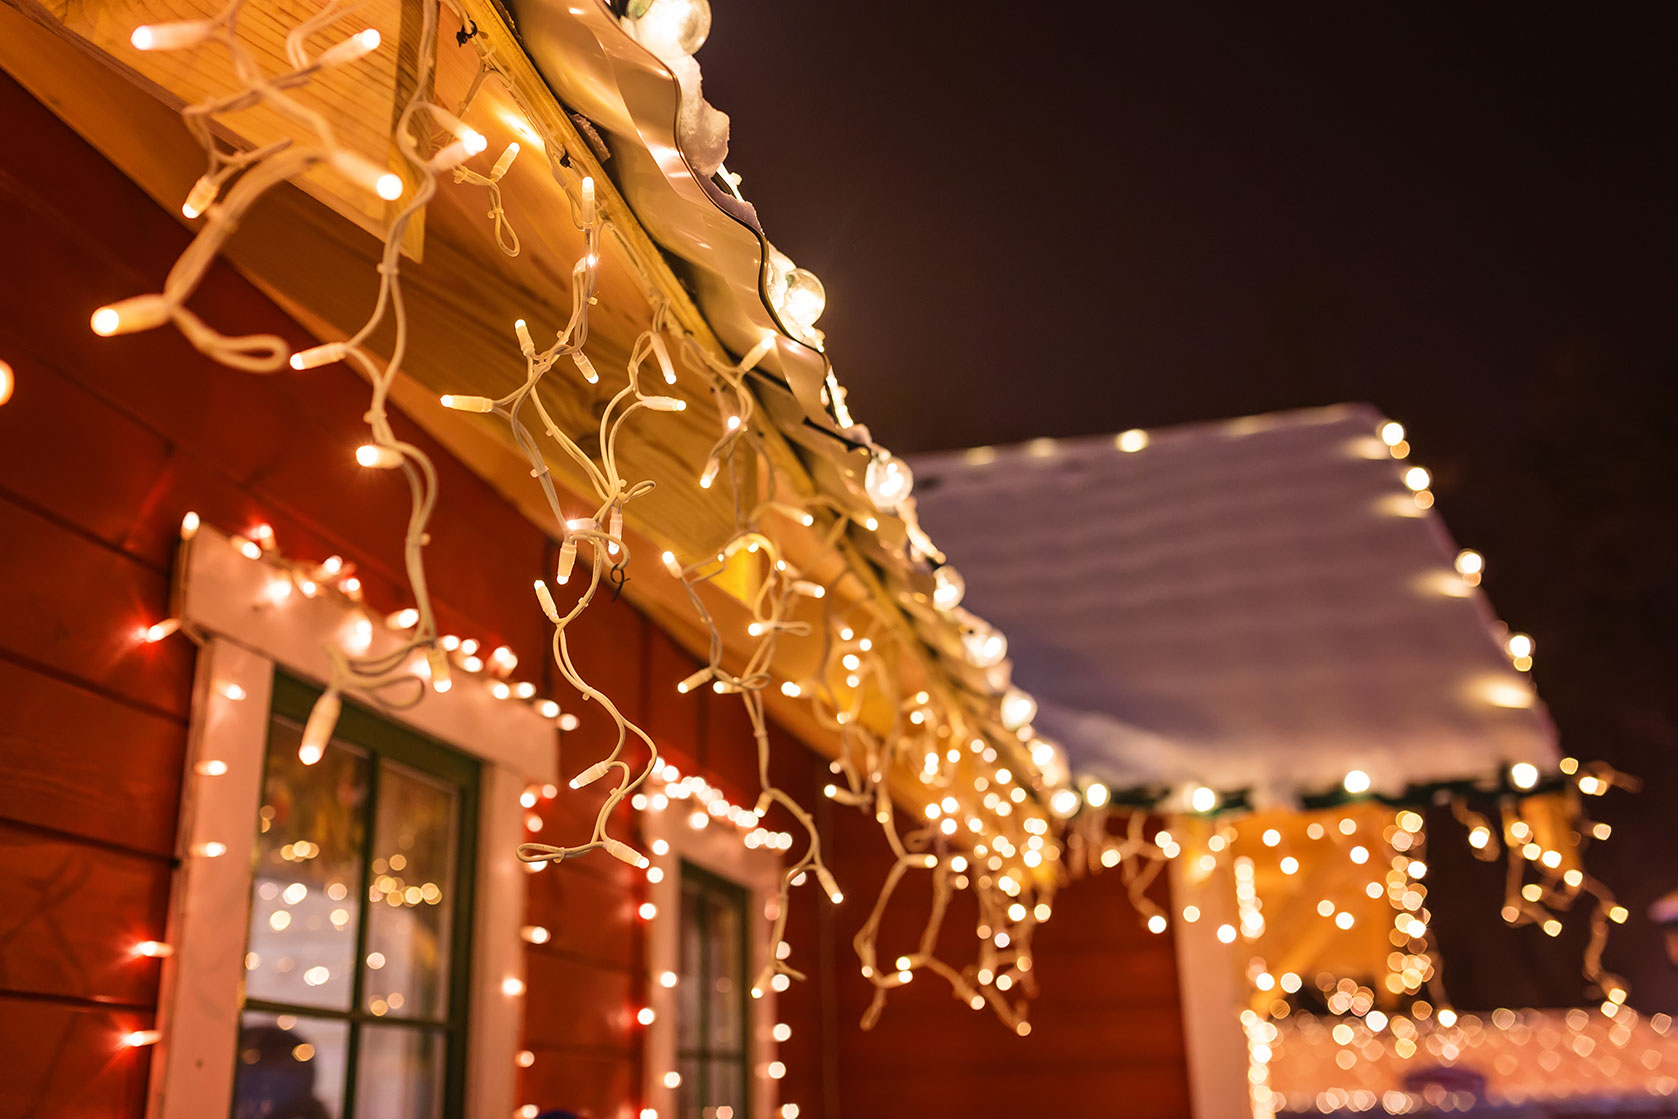 Custom-made Christmas light installation in Evansville, IN